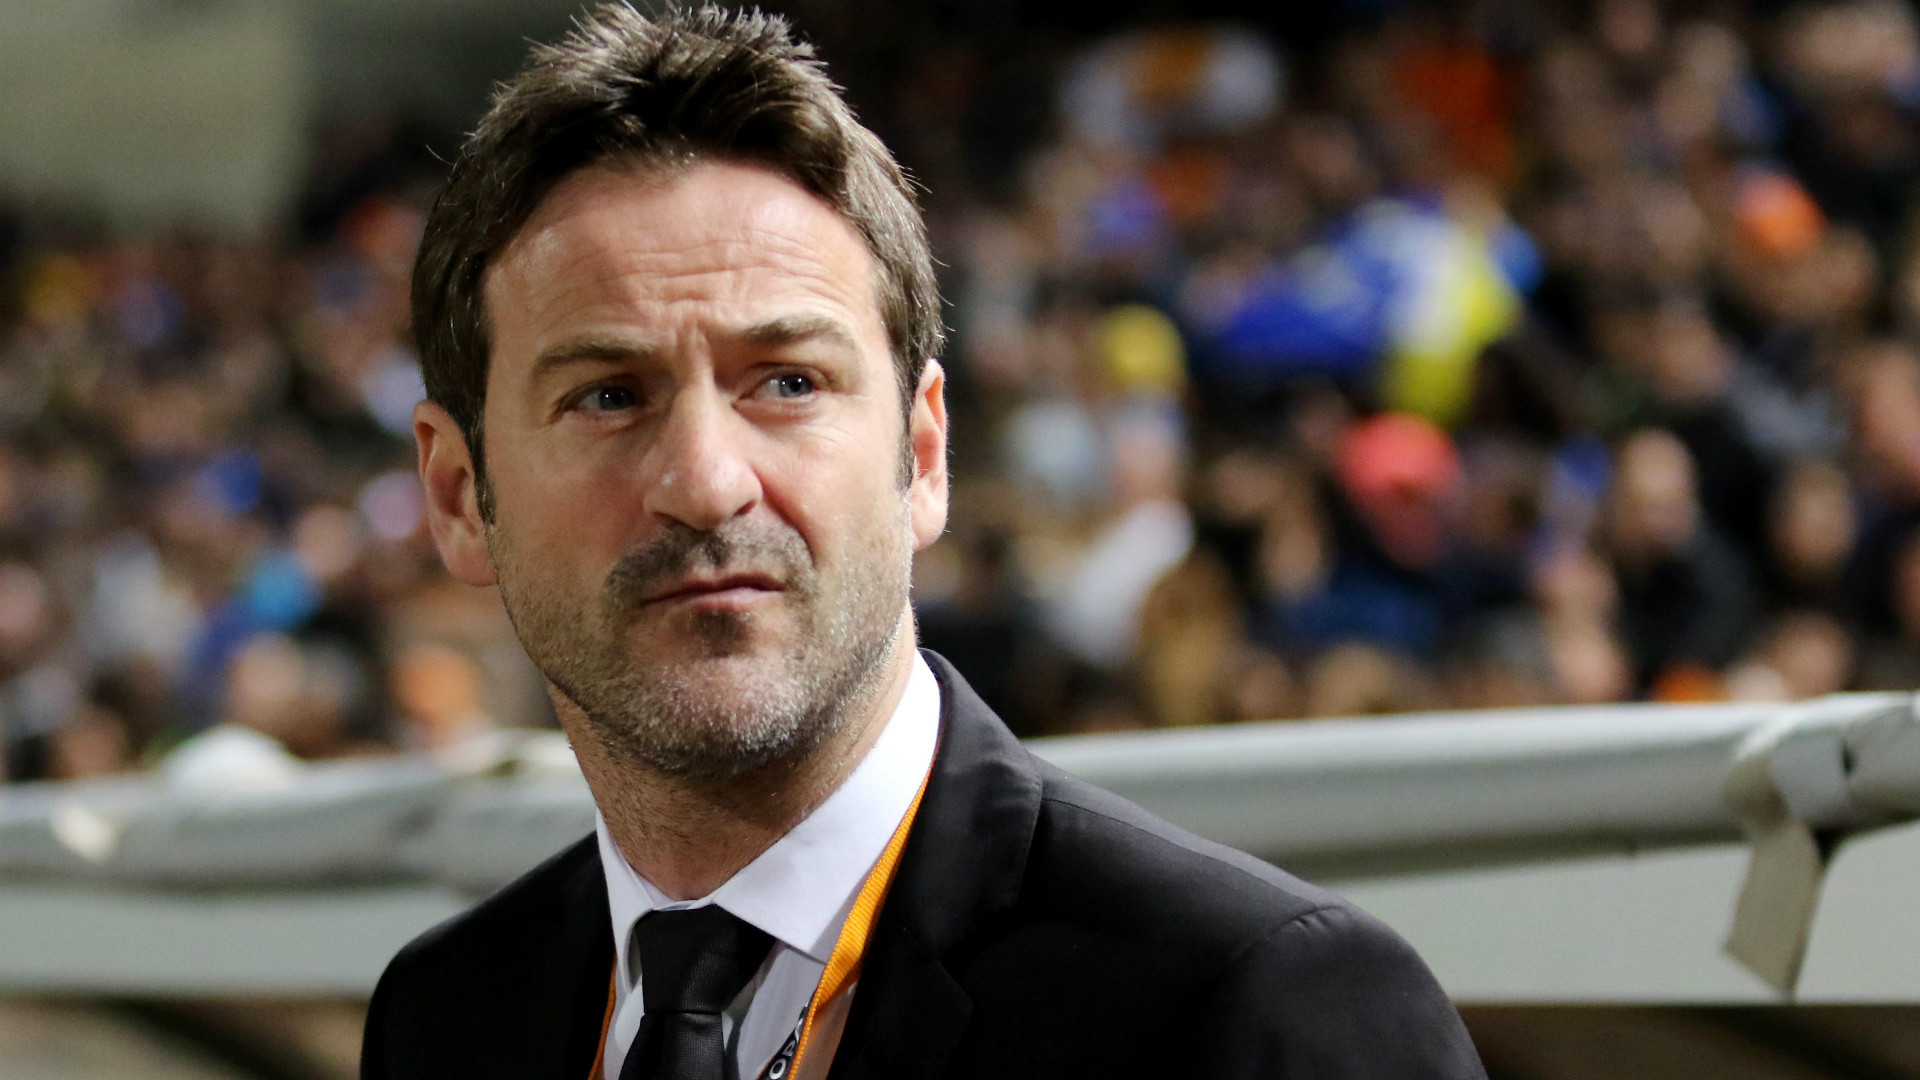 Leeds boss Christiansen hopeful Burnley win previews Premier League life